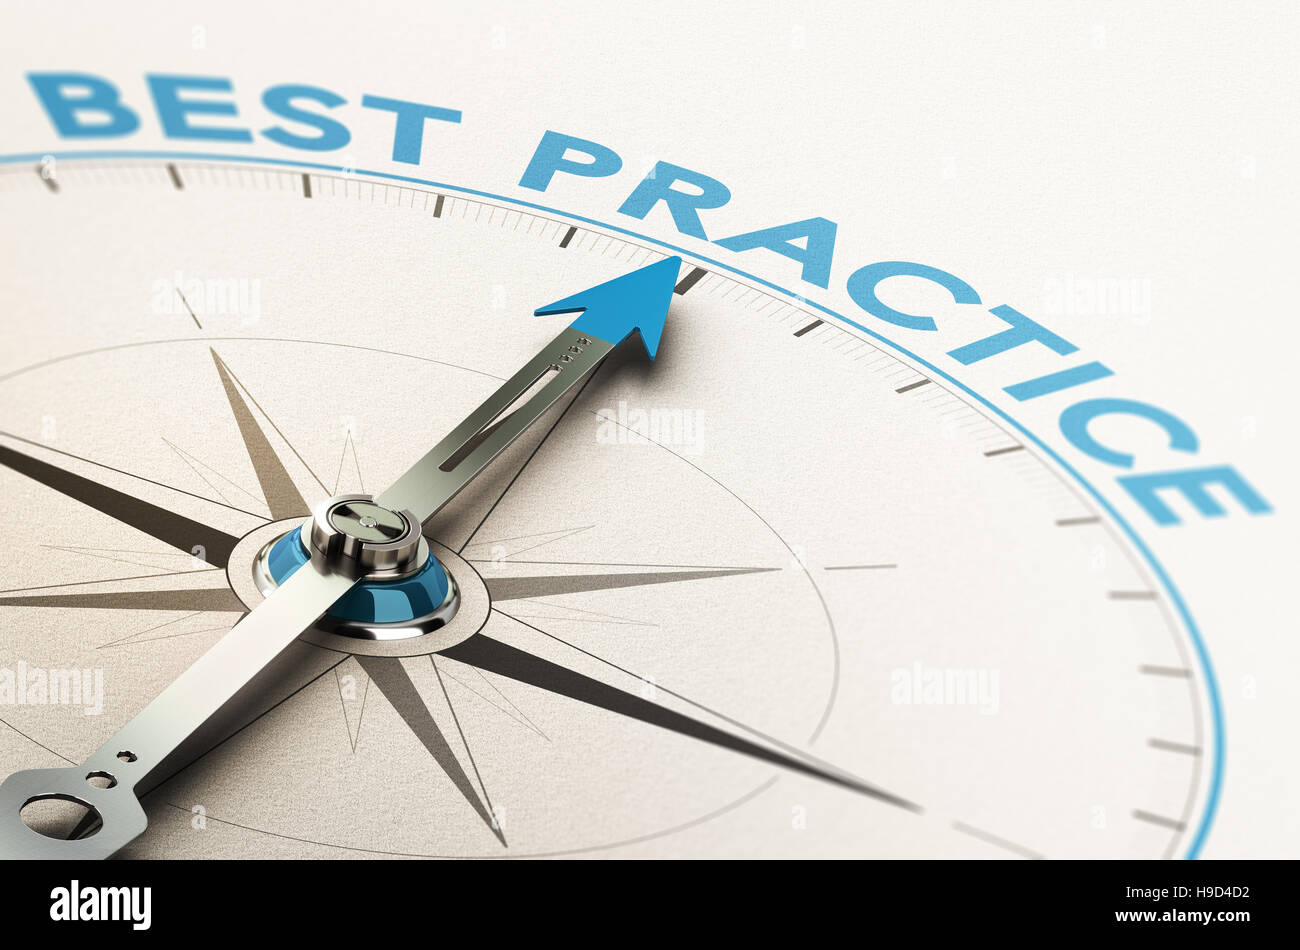 3D illustration of a compass with needle pointing the text best practice - Stock Image